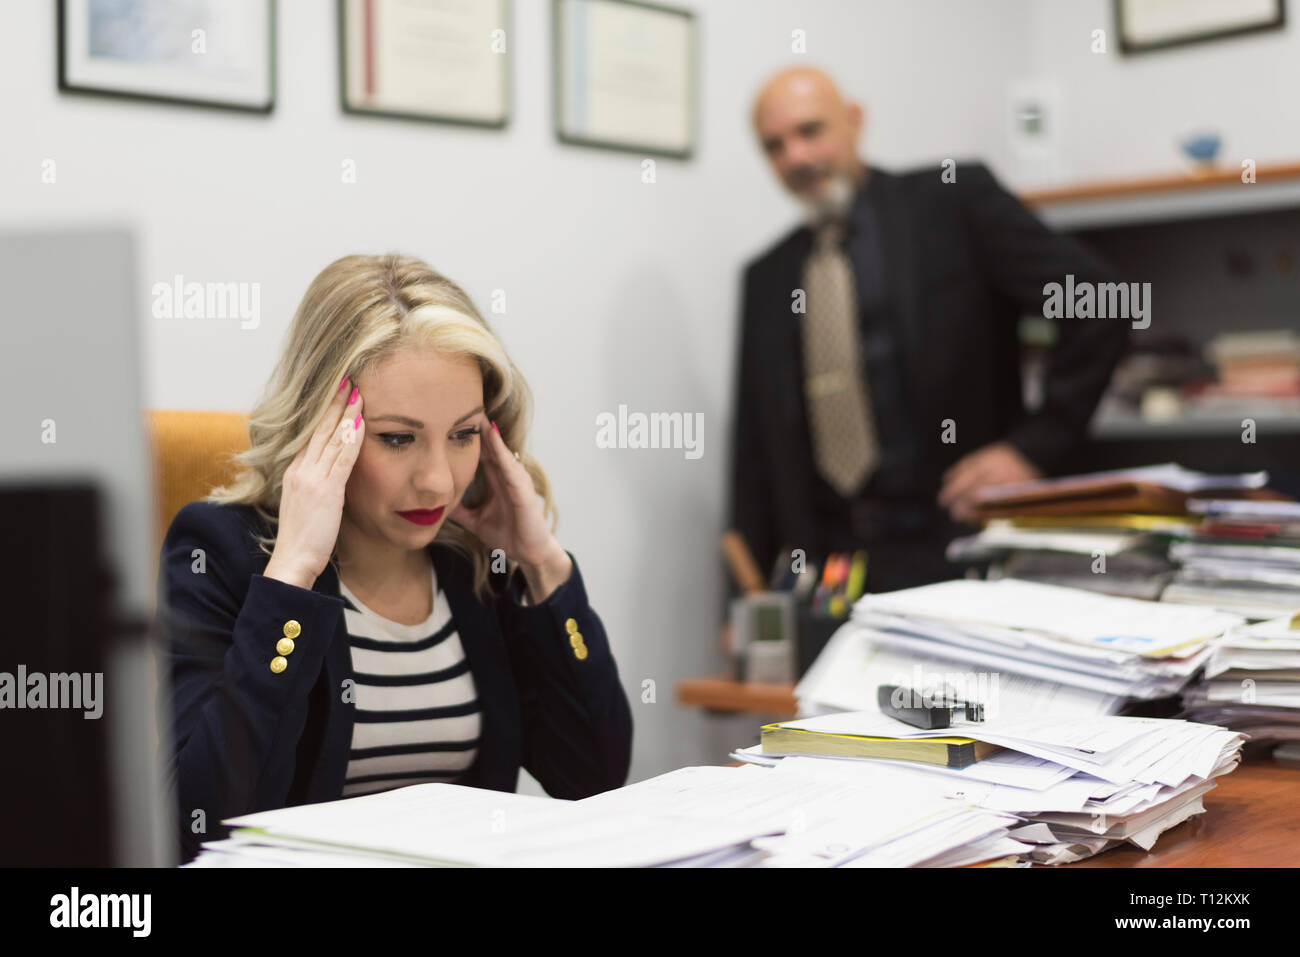 Female office worker stressed before a large load of documents and office work Stock Photo